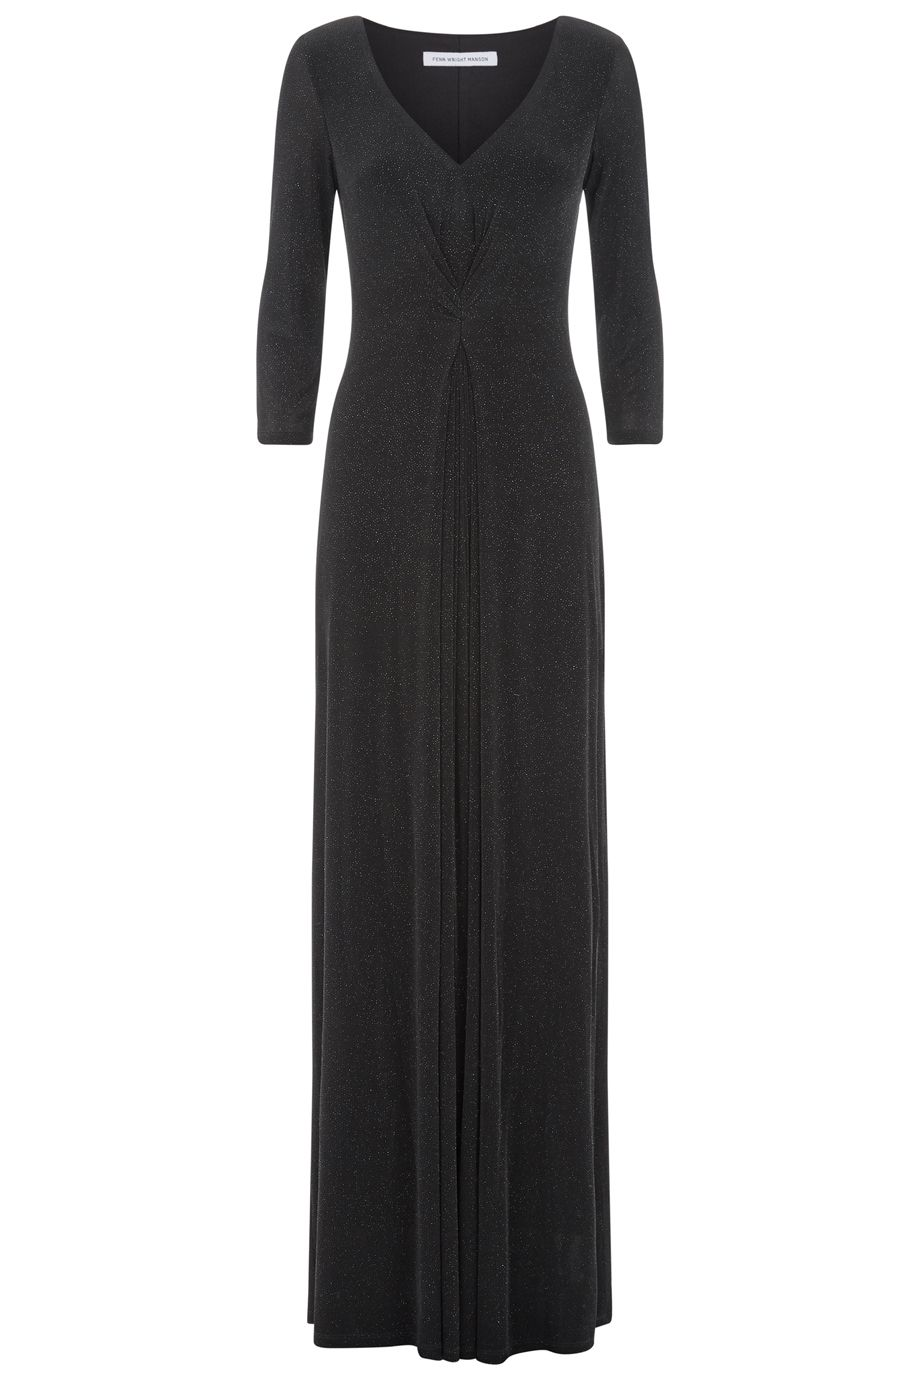 Fenn Wright Manson Bailey Dress, Black